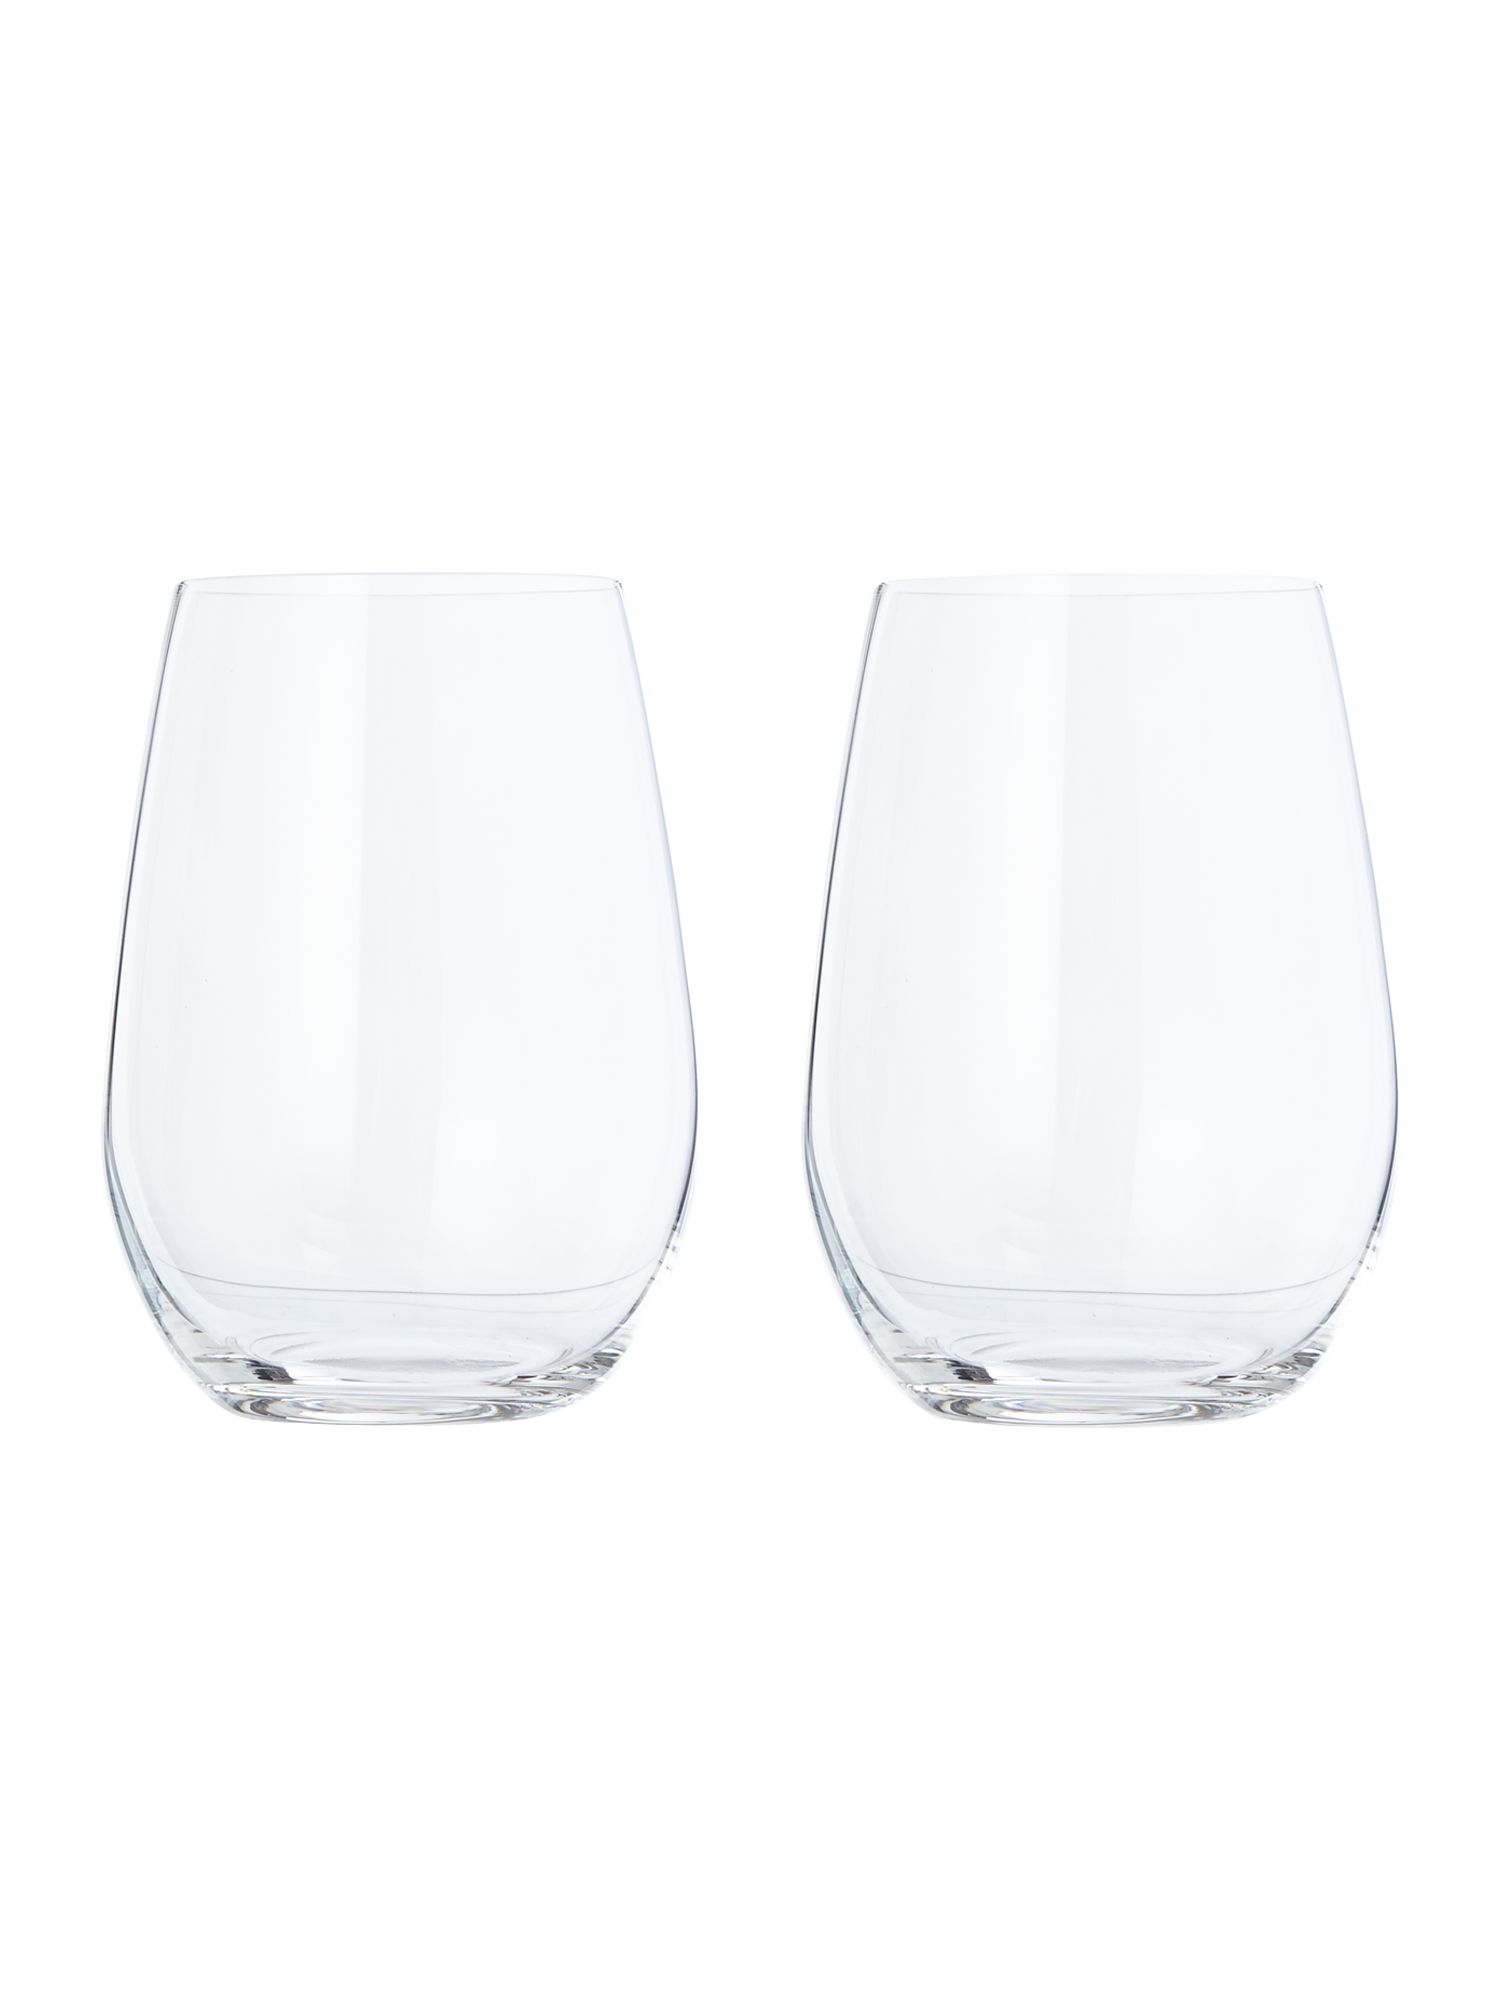 Image of Riedel O stemless sauvignon/riesling wine glass set of 2